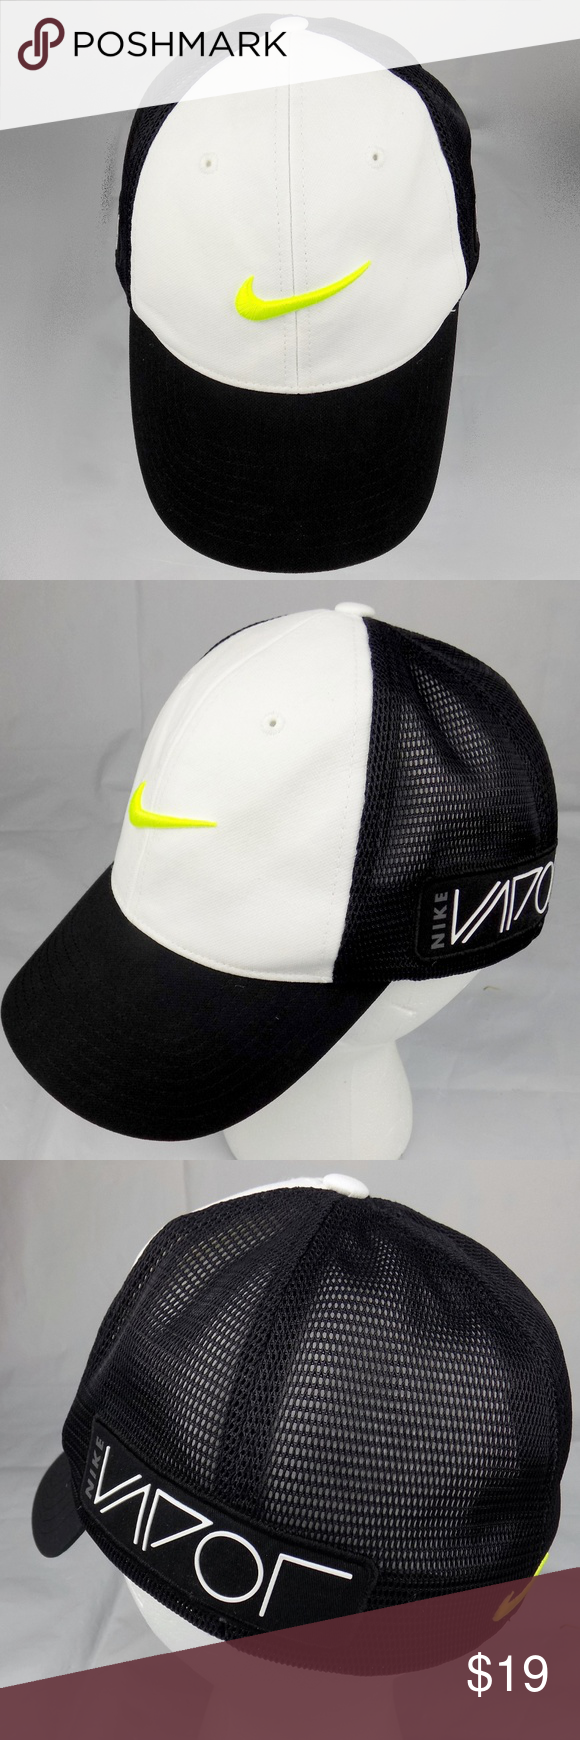 Nike Golf Tour Cap RZN VAPOR Mesh lack White S/M Nike Golf Tour Cap Black White Yellow Hat Mens Size S/M RZN VAPOR Mesh Flex Fit  Condition: Good used condtion, please see photos for details  Ships fast same day or next business day.  Feel free to ask questions,  David & Lin  MT0031 Nike Accessories Hats